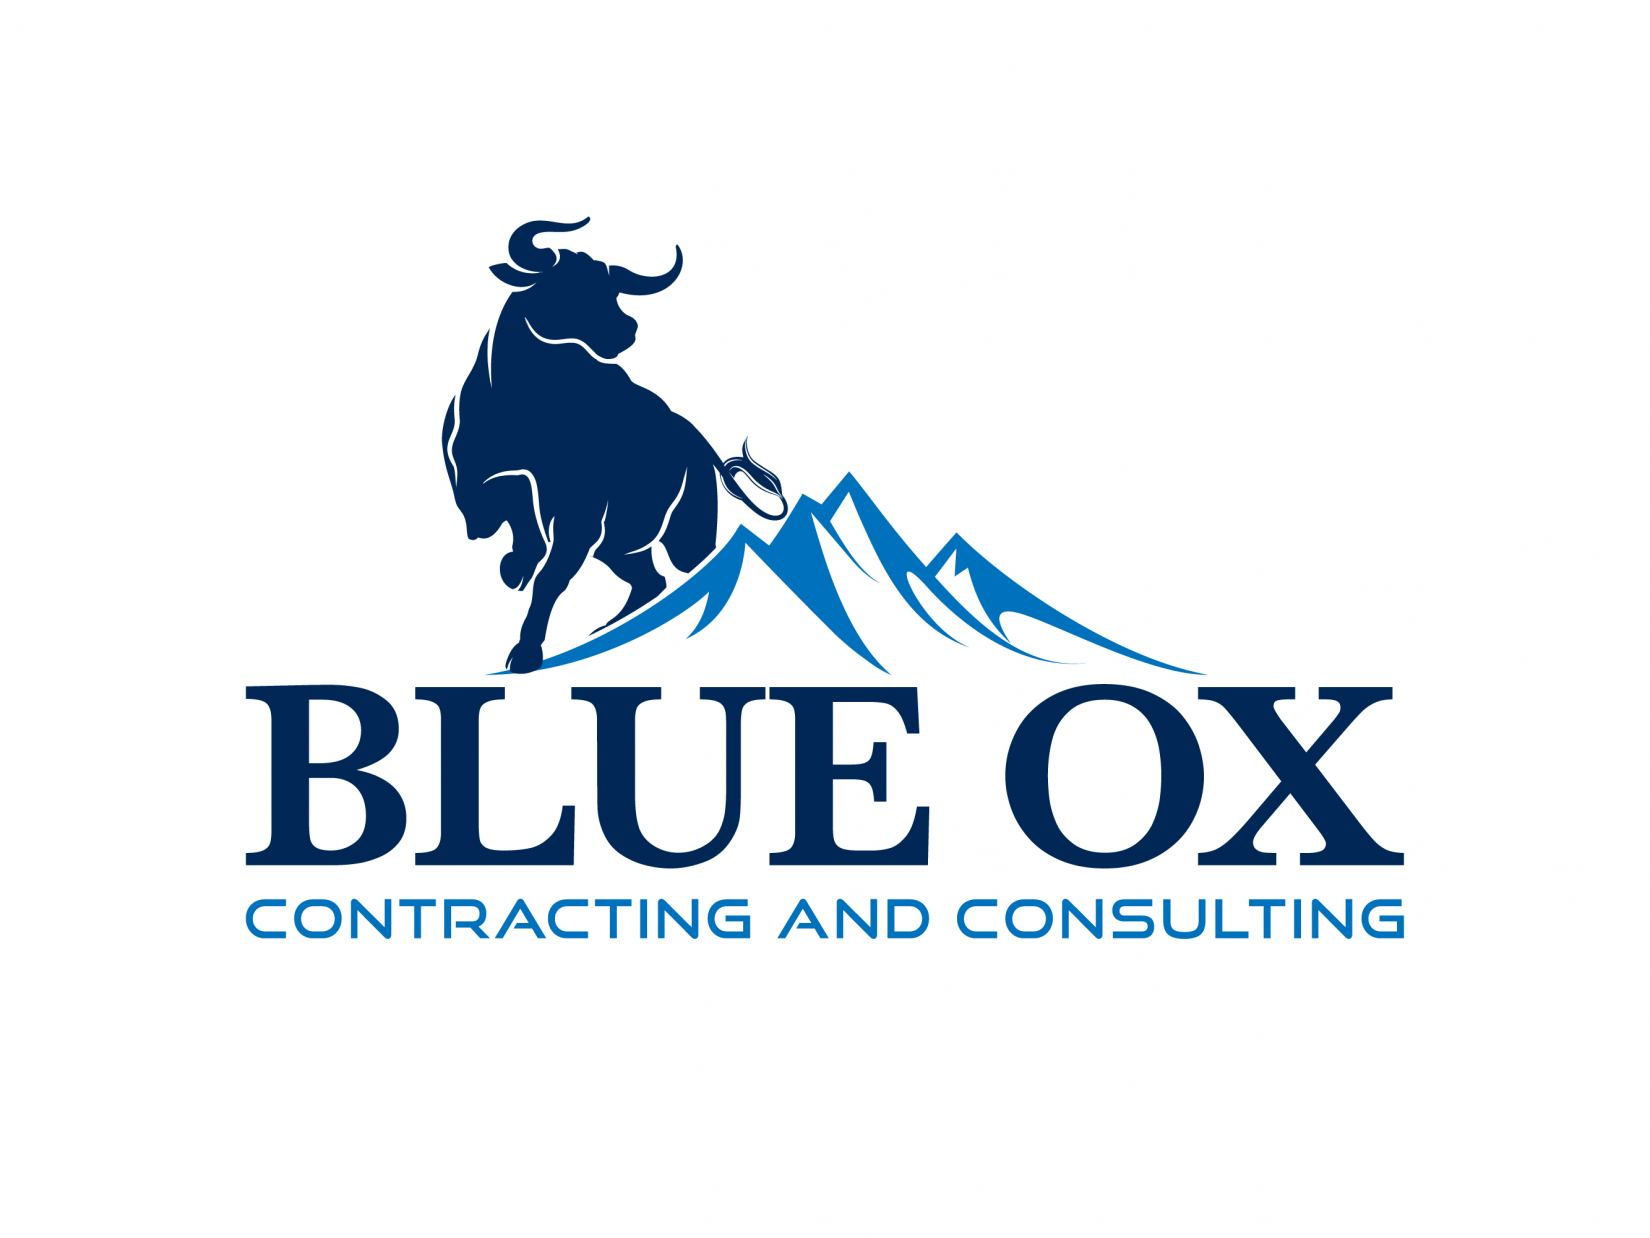 Blue Ox Contracting and Consulting